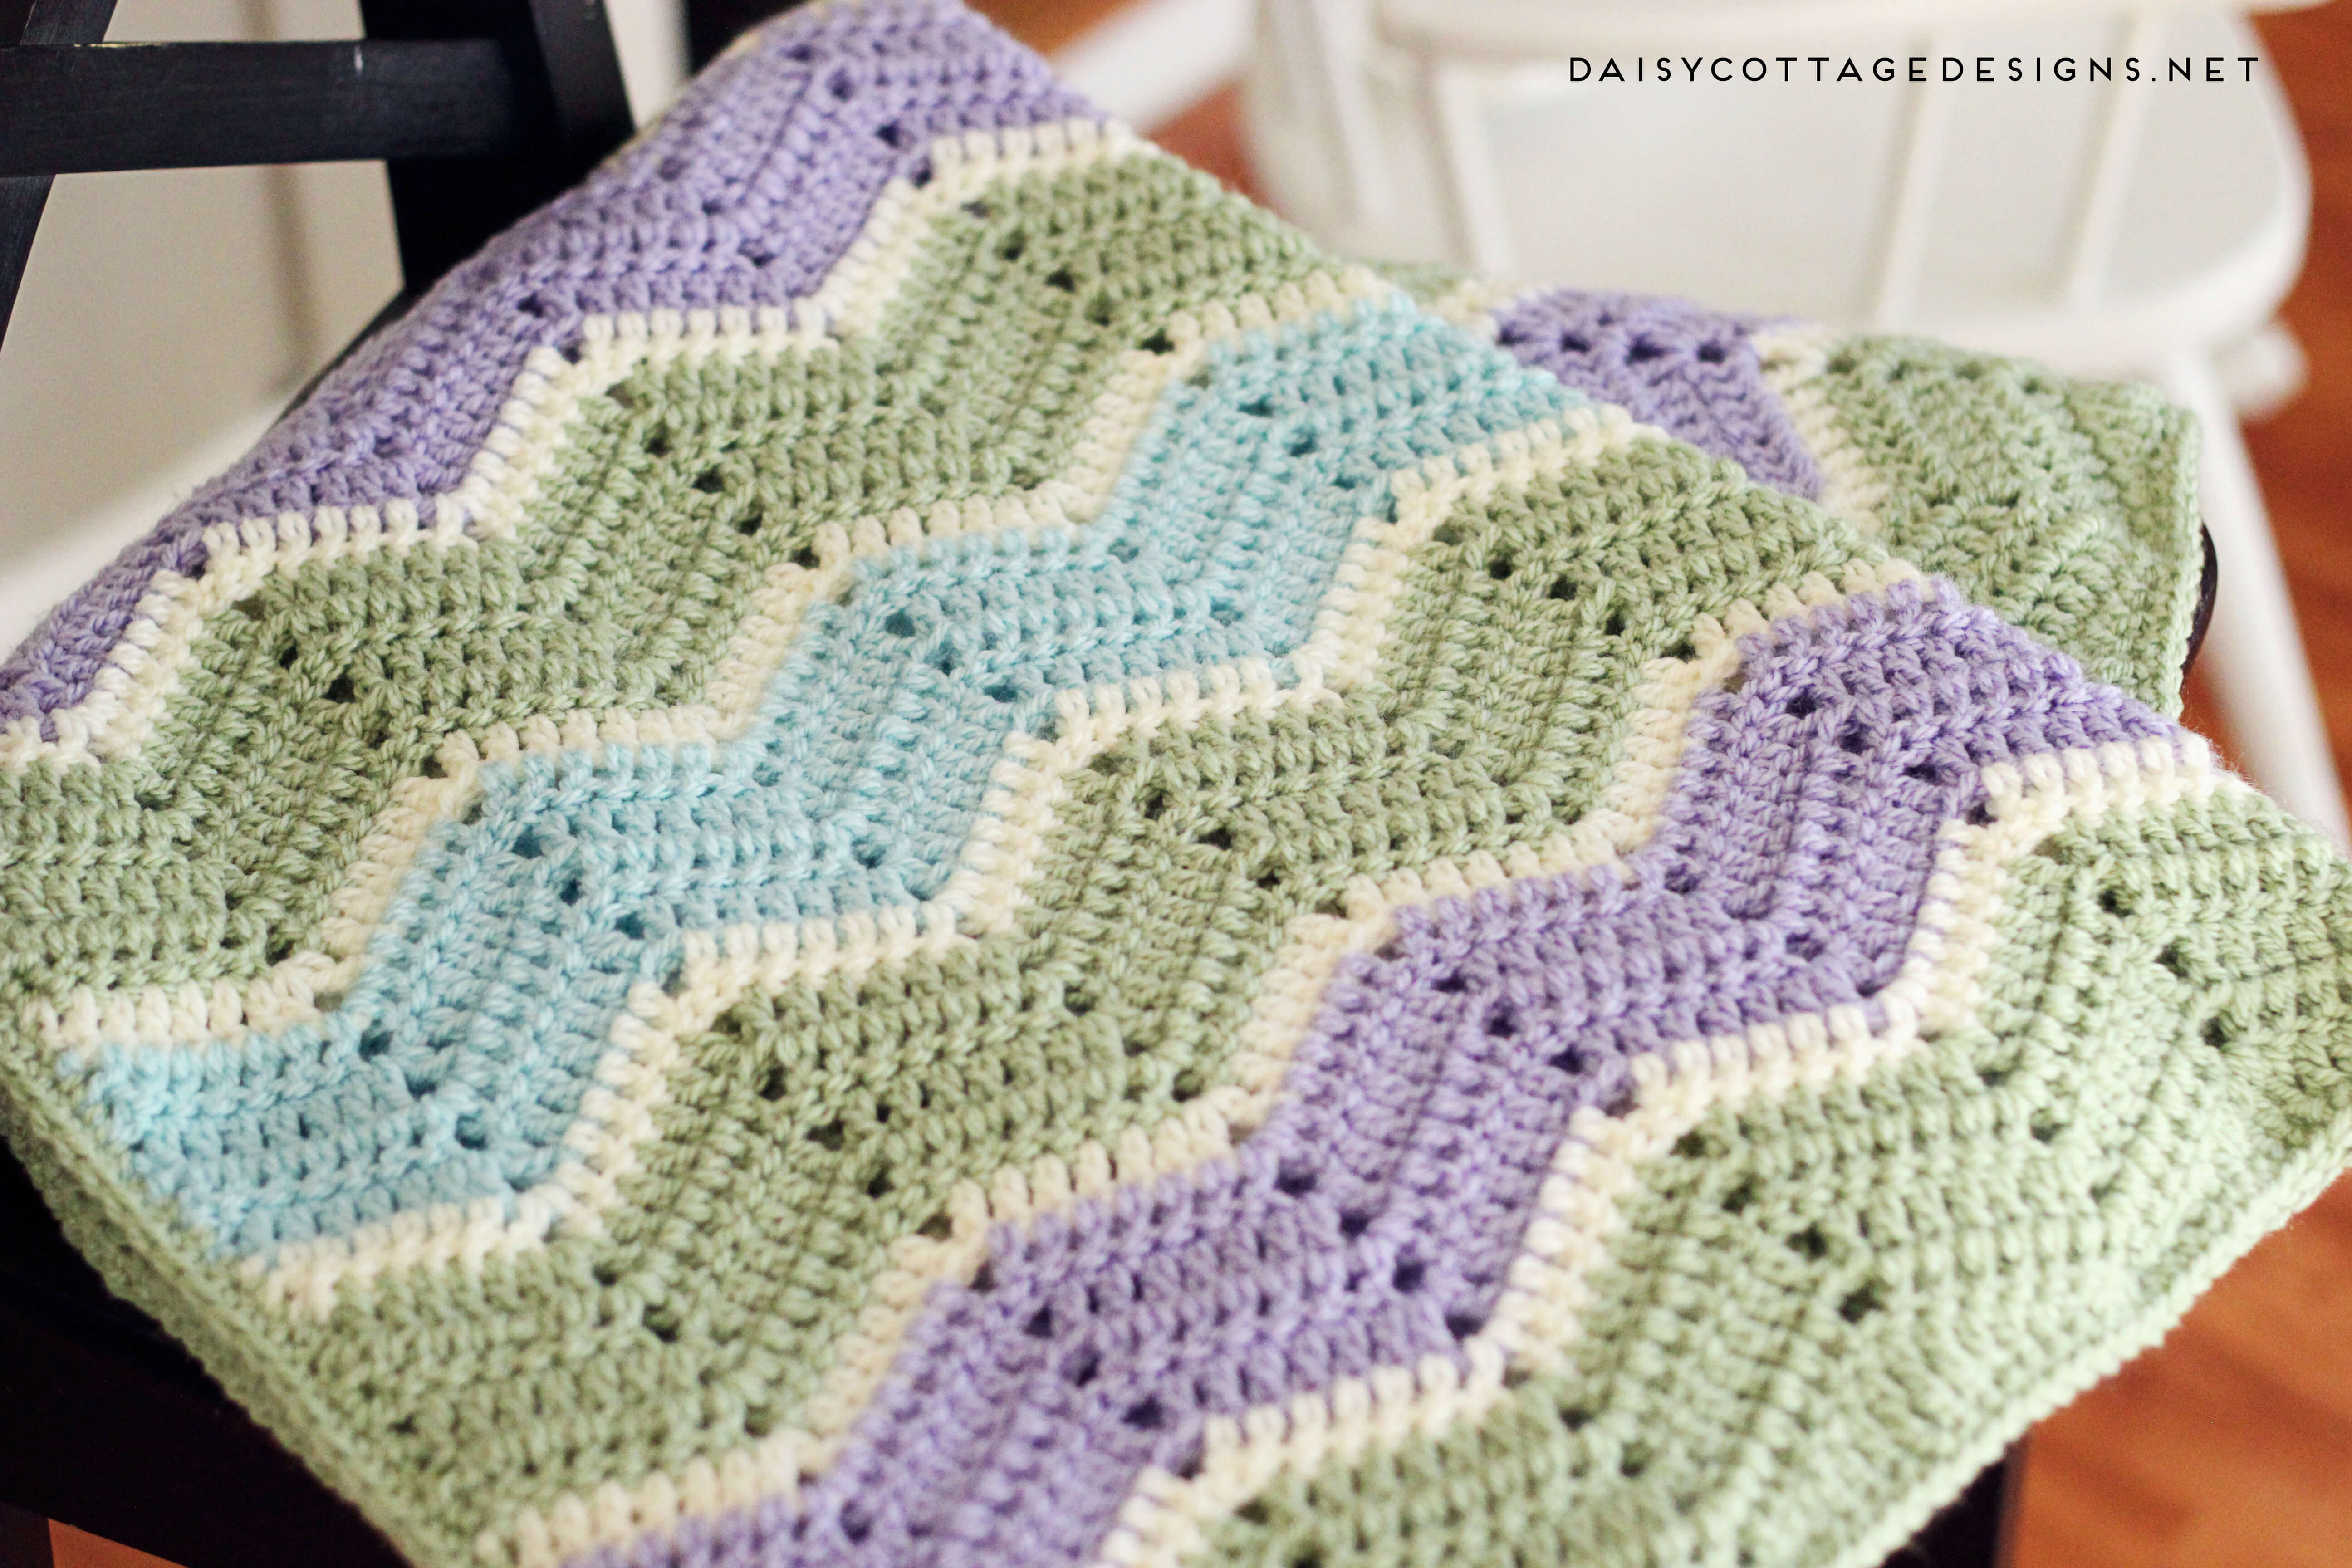 Awesome Ripple Blanket Crochet Pattern Daisy Cottage Designs Printable Crochet Patterns Of New 42 Pictures Printable Crochet Patterns